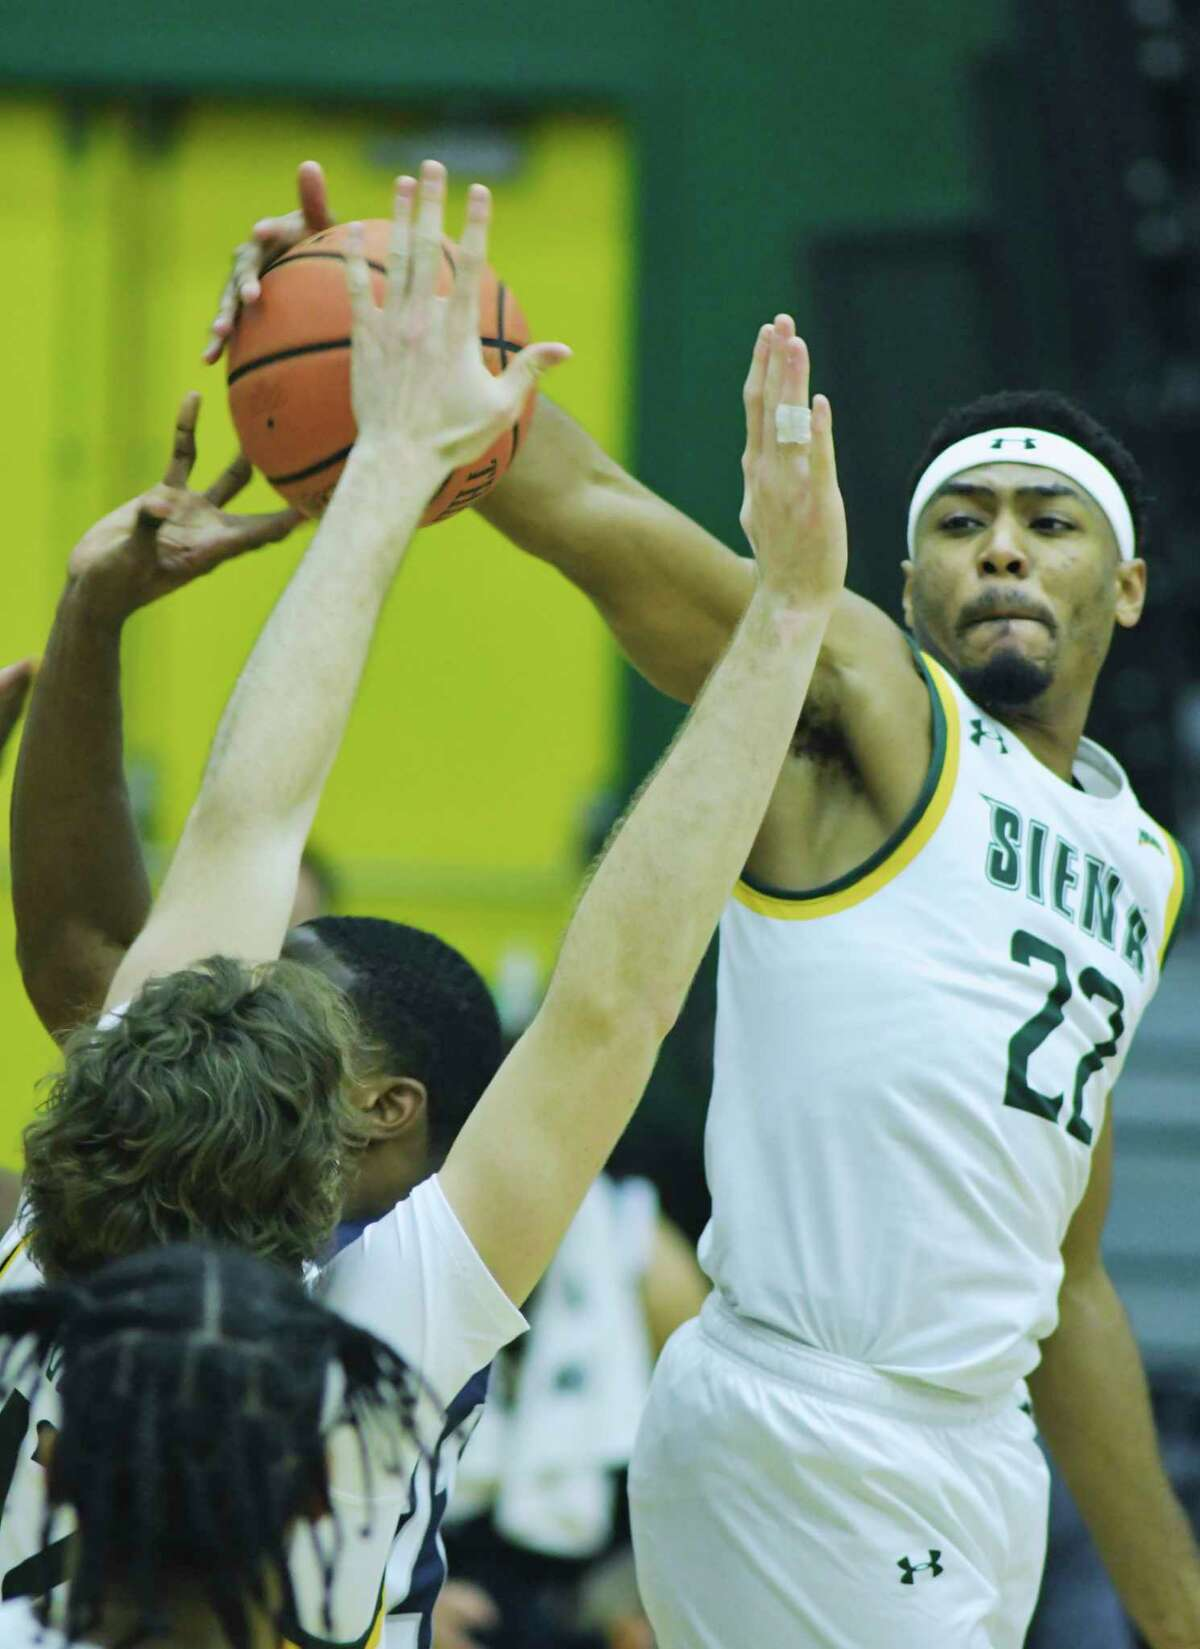 Jalen Pickett of Siena, shown playing against Monmouth recently, scored his 1,000th point early against Fairfield and injured his right leg late in the game. (Paul Buckowski/Times Union)